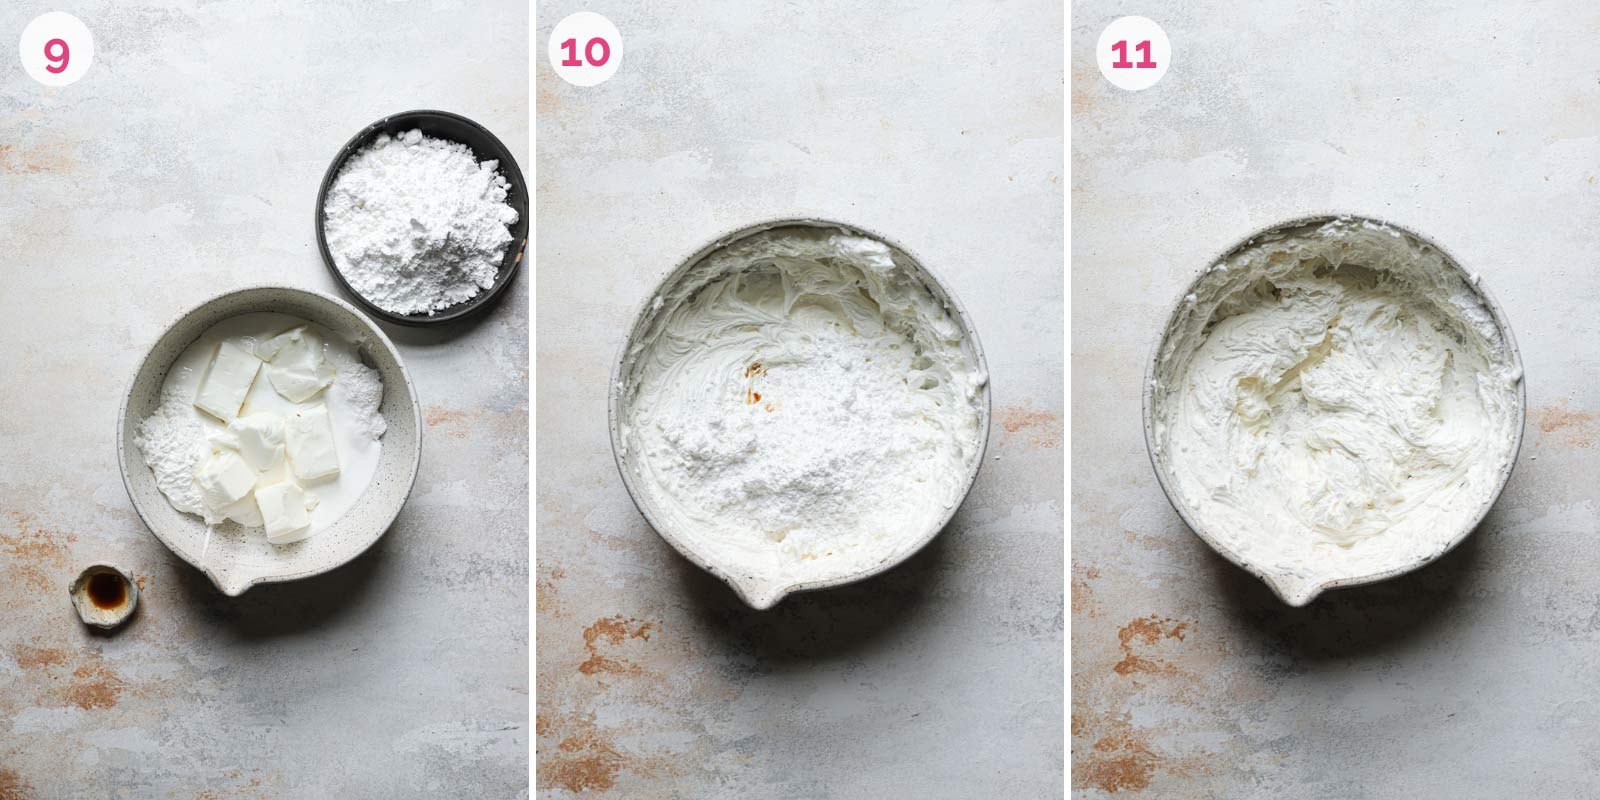 Marshmallow filling mixed together in a stainless steel mixing bowl.